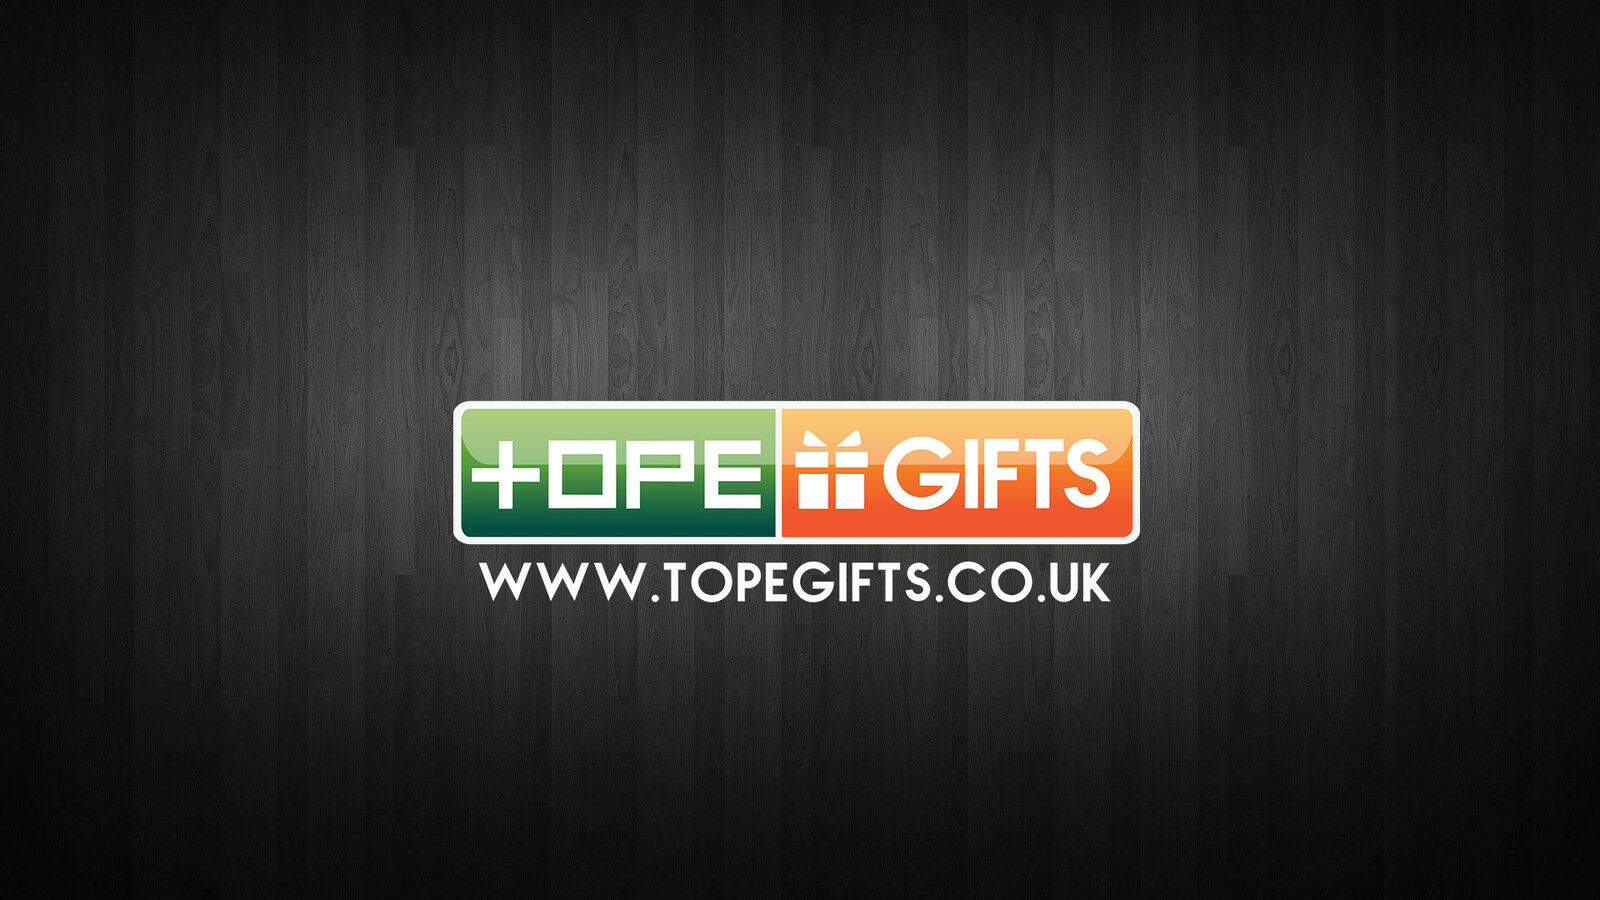 Tope Gifts